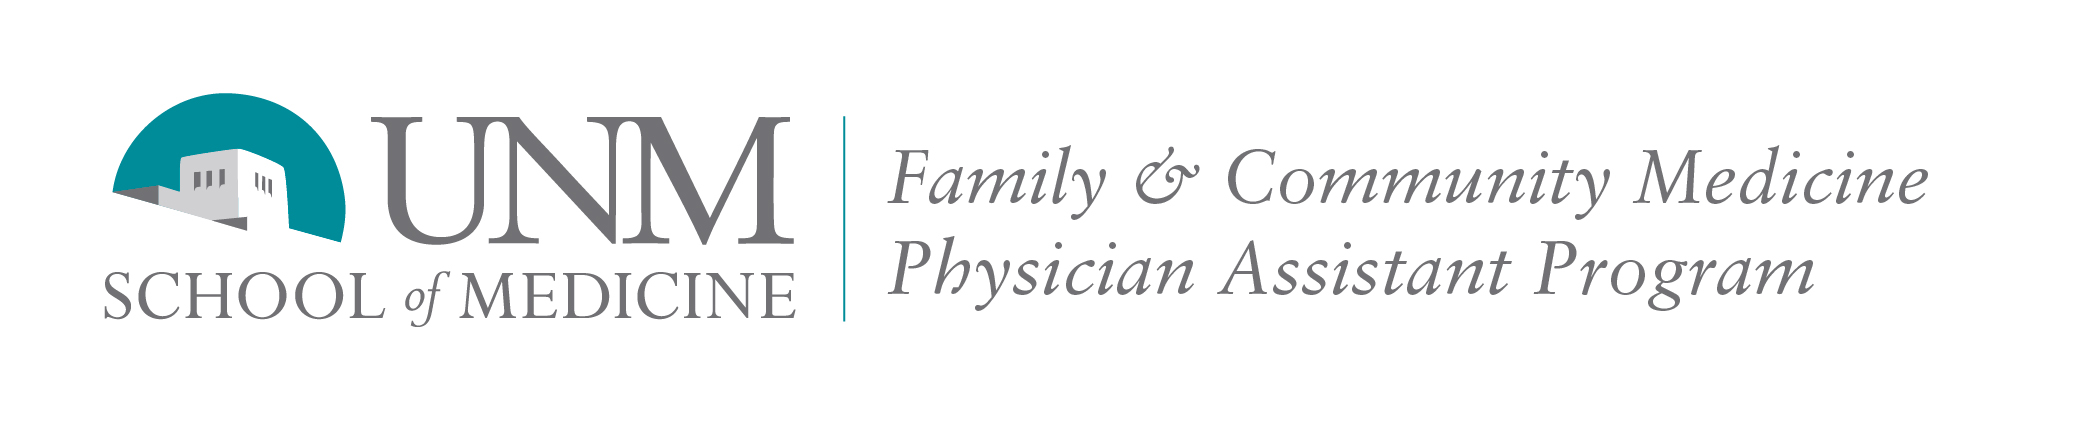 University of New Mexico Physician Assistant Program